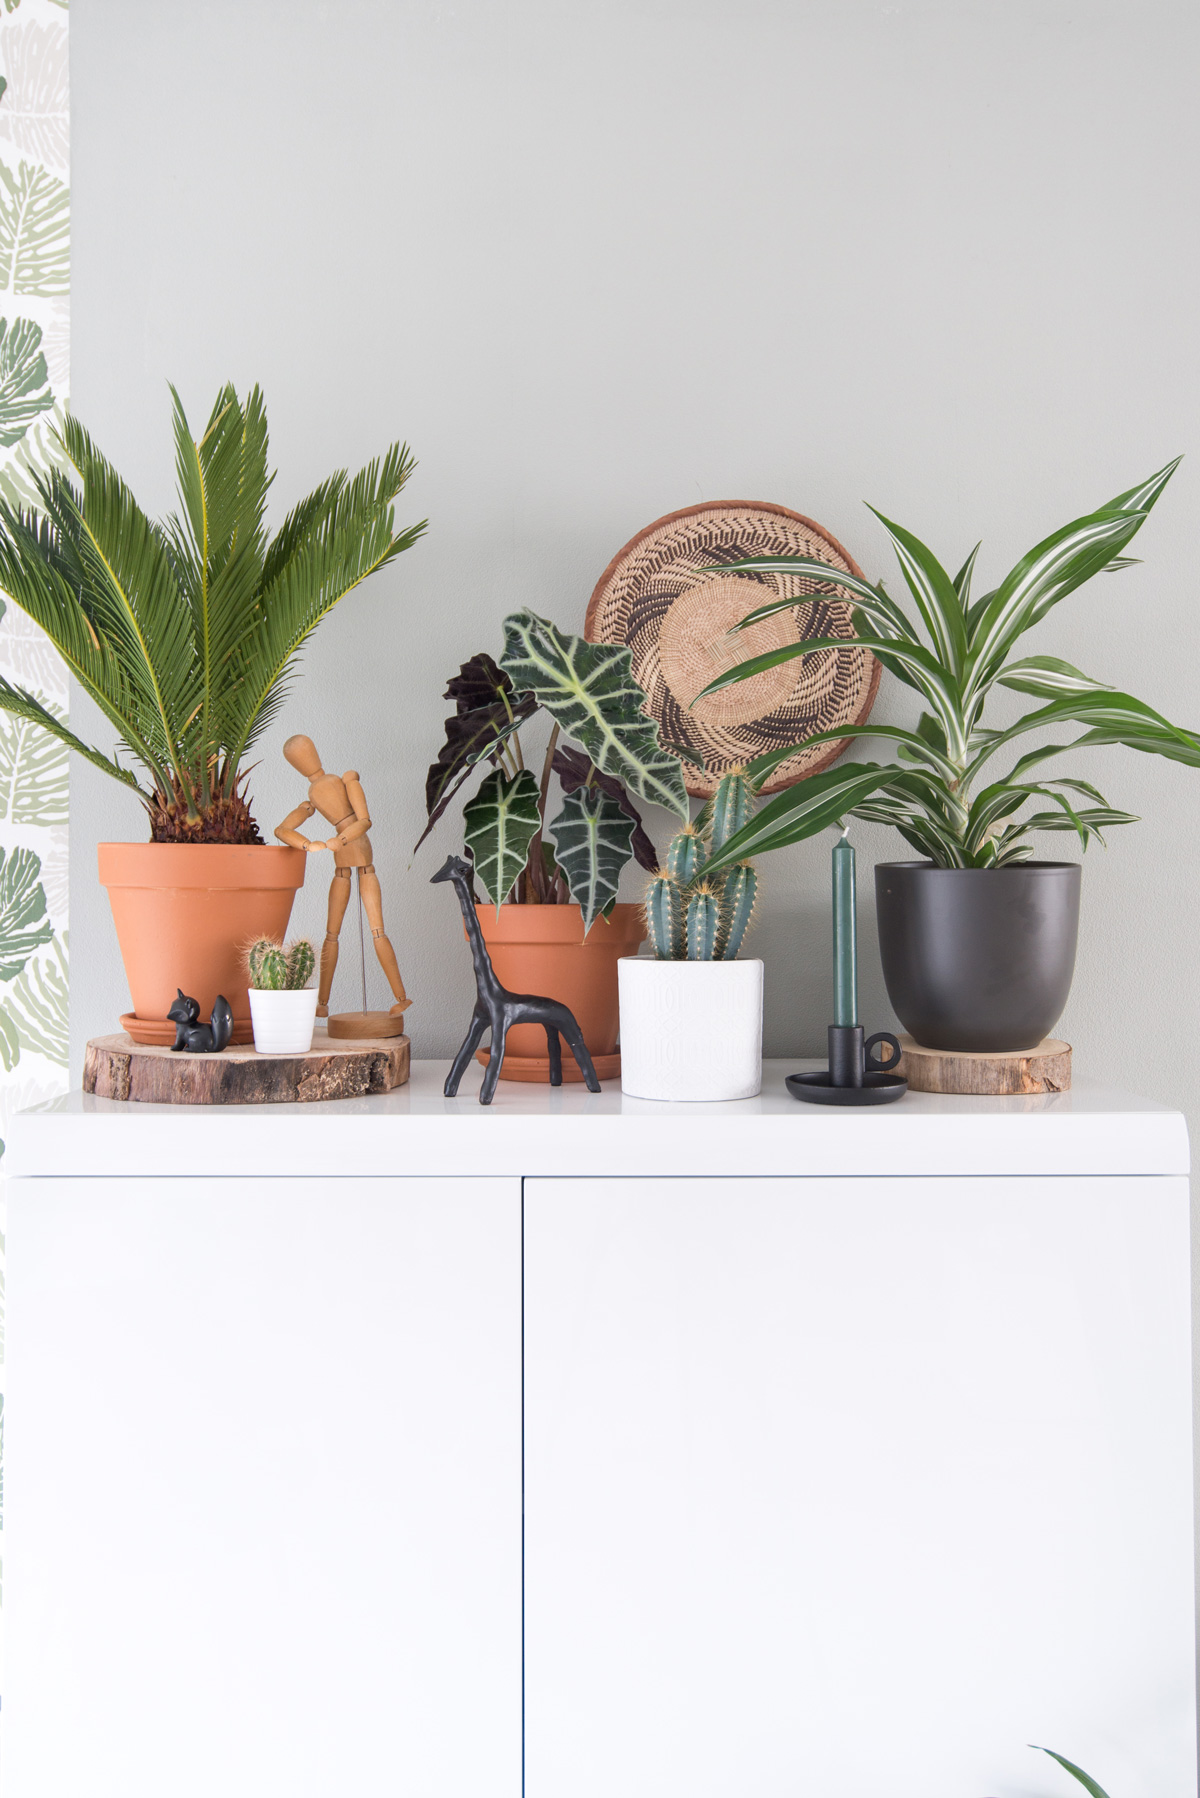 keeelly91blog urbanjungle intratuin planten groen in huis groenevingers interieur houseplant green woonkamer